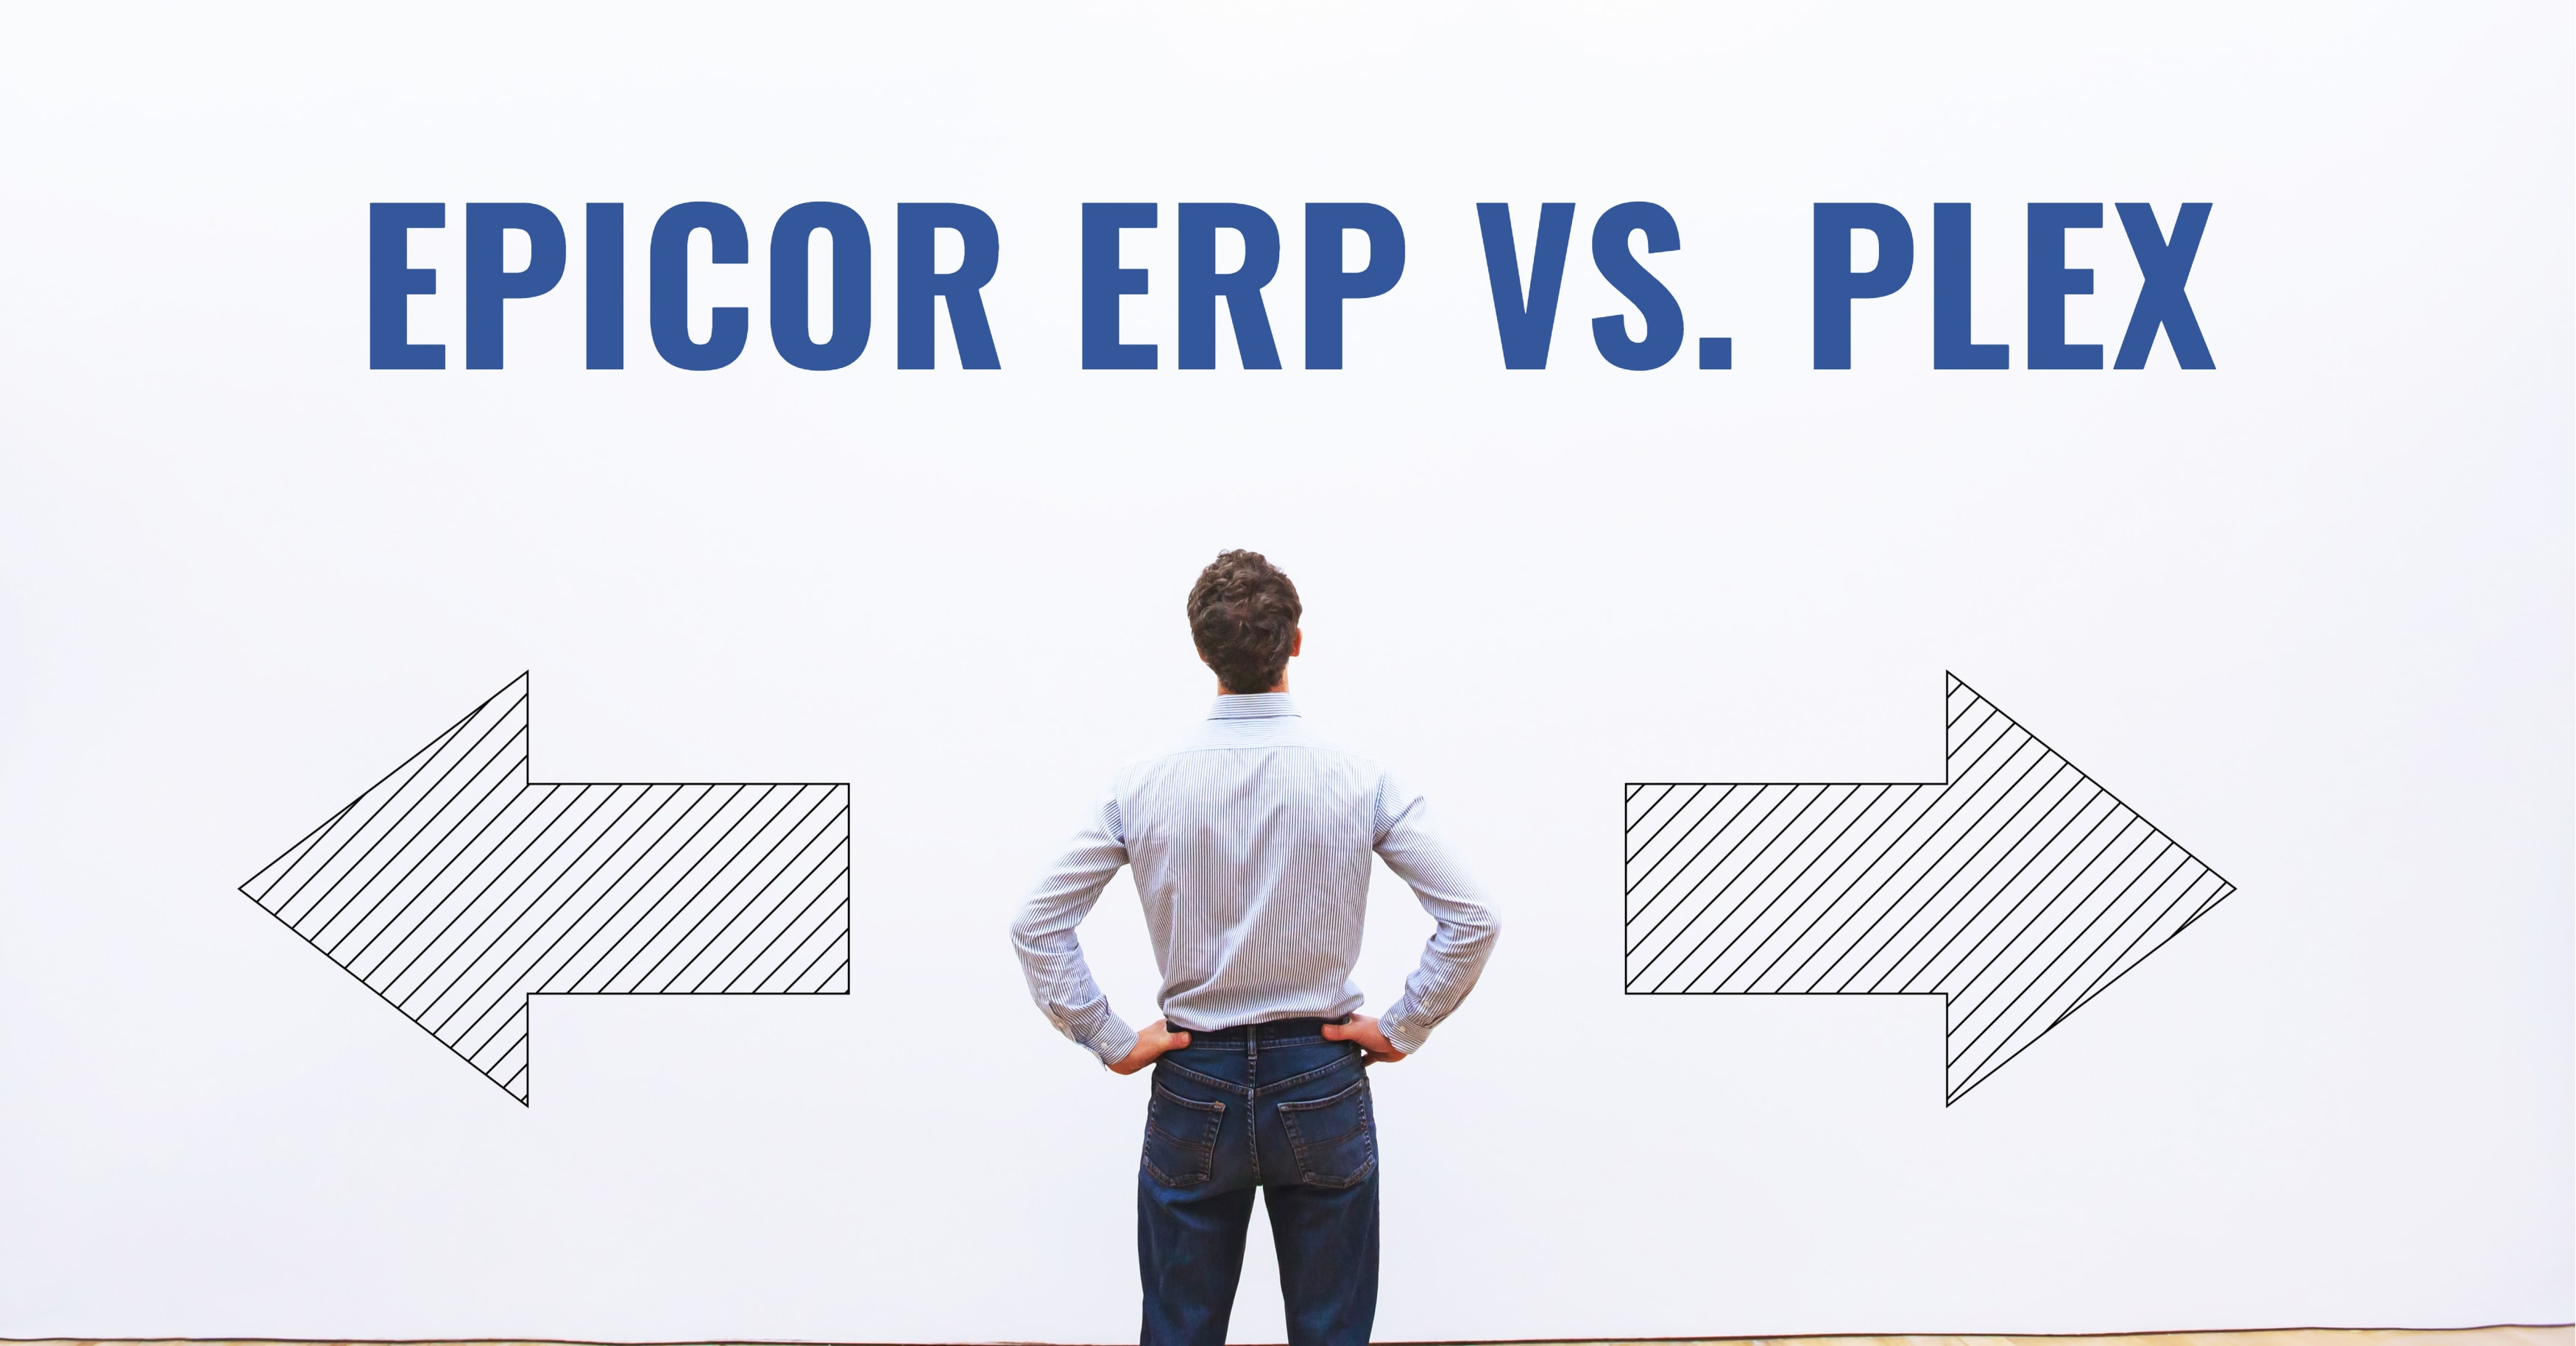 Epicor ERP vs. Plex